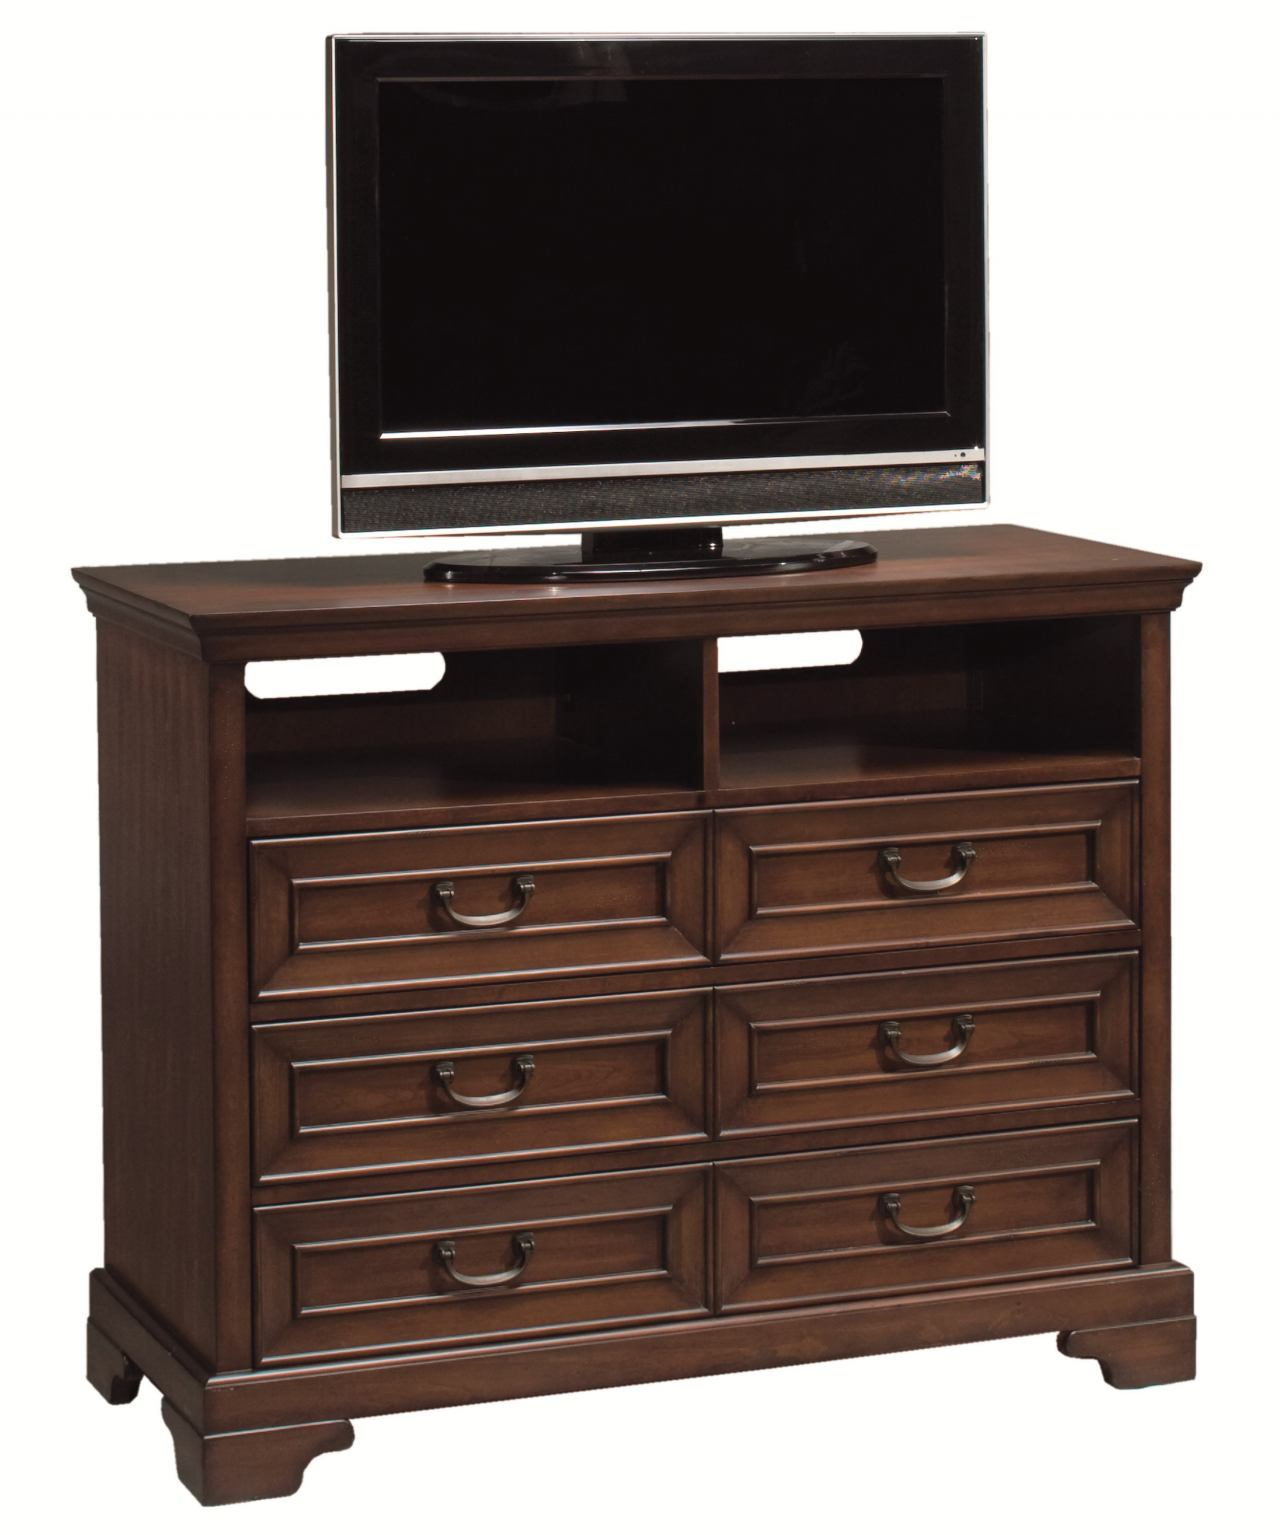 Aspenhome Richmond Entertainment Chest in Charleston Brown I40-485